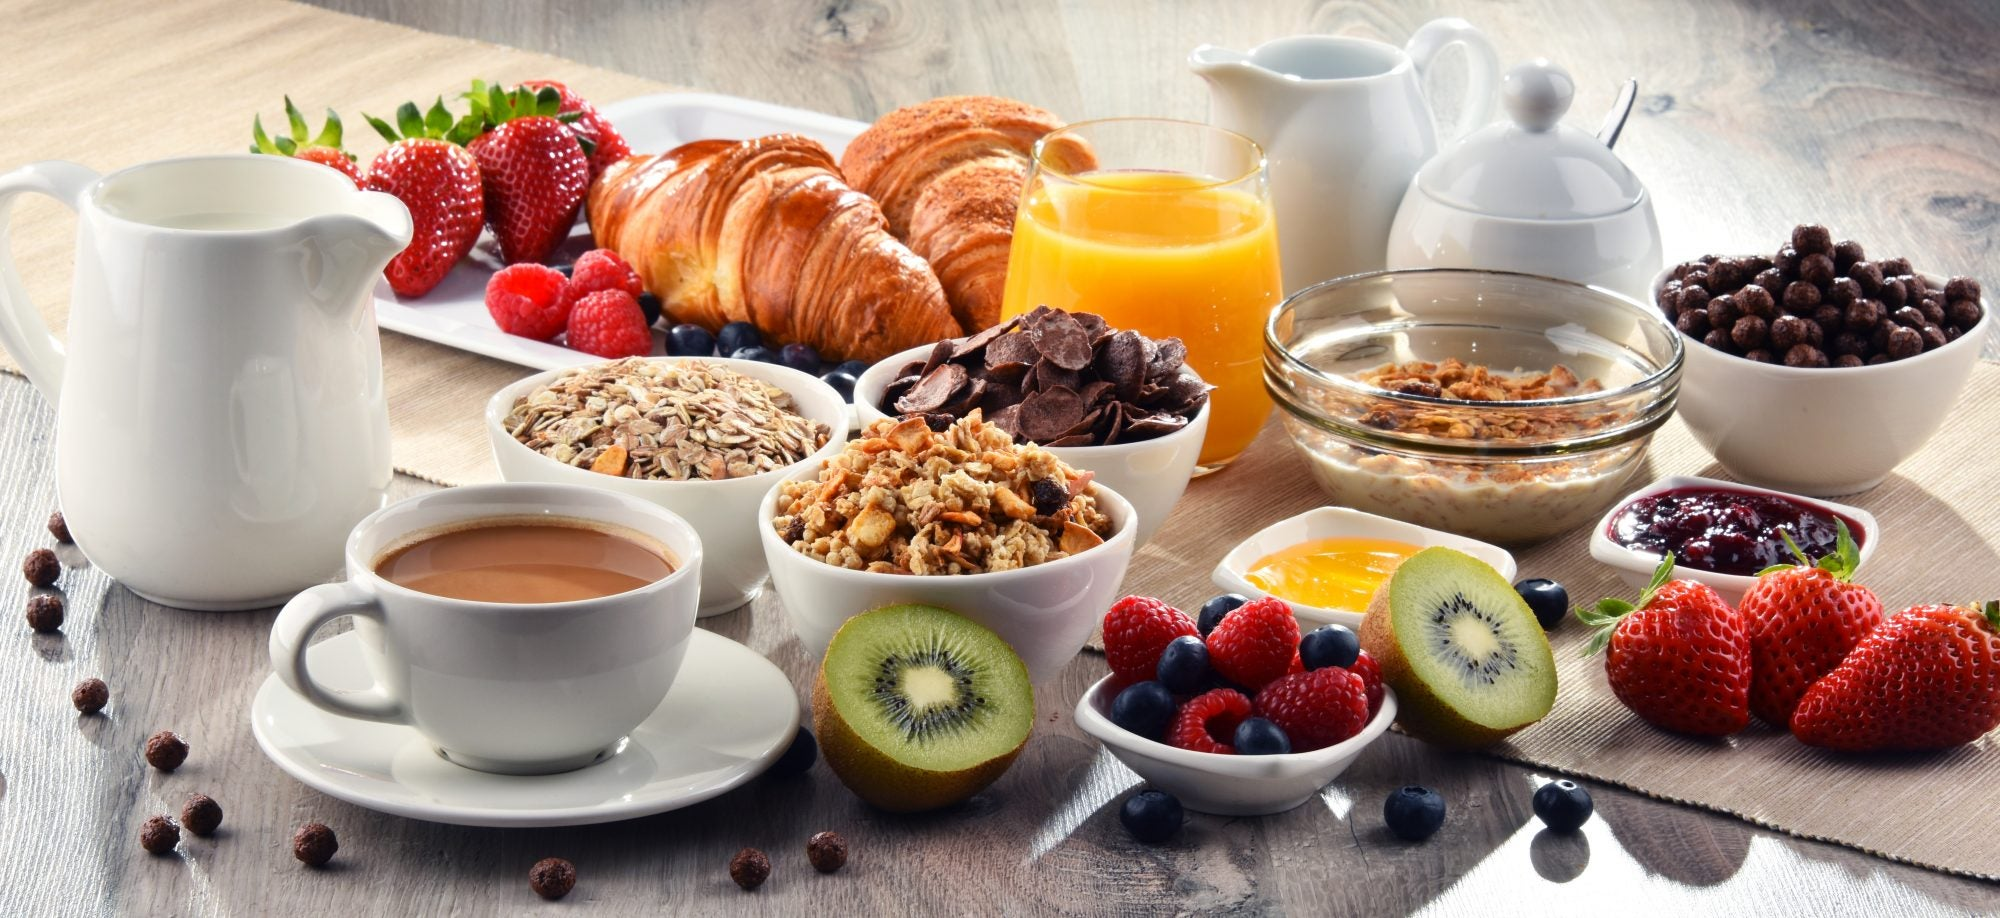 Hotels With Kitchens Plus Free Breakfast! We Compare Hilton Vs Marriott Vs IHG vs Hyatt